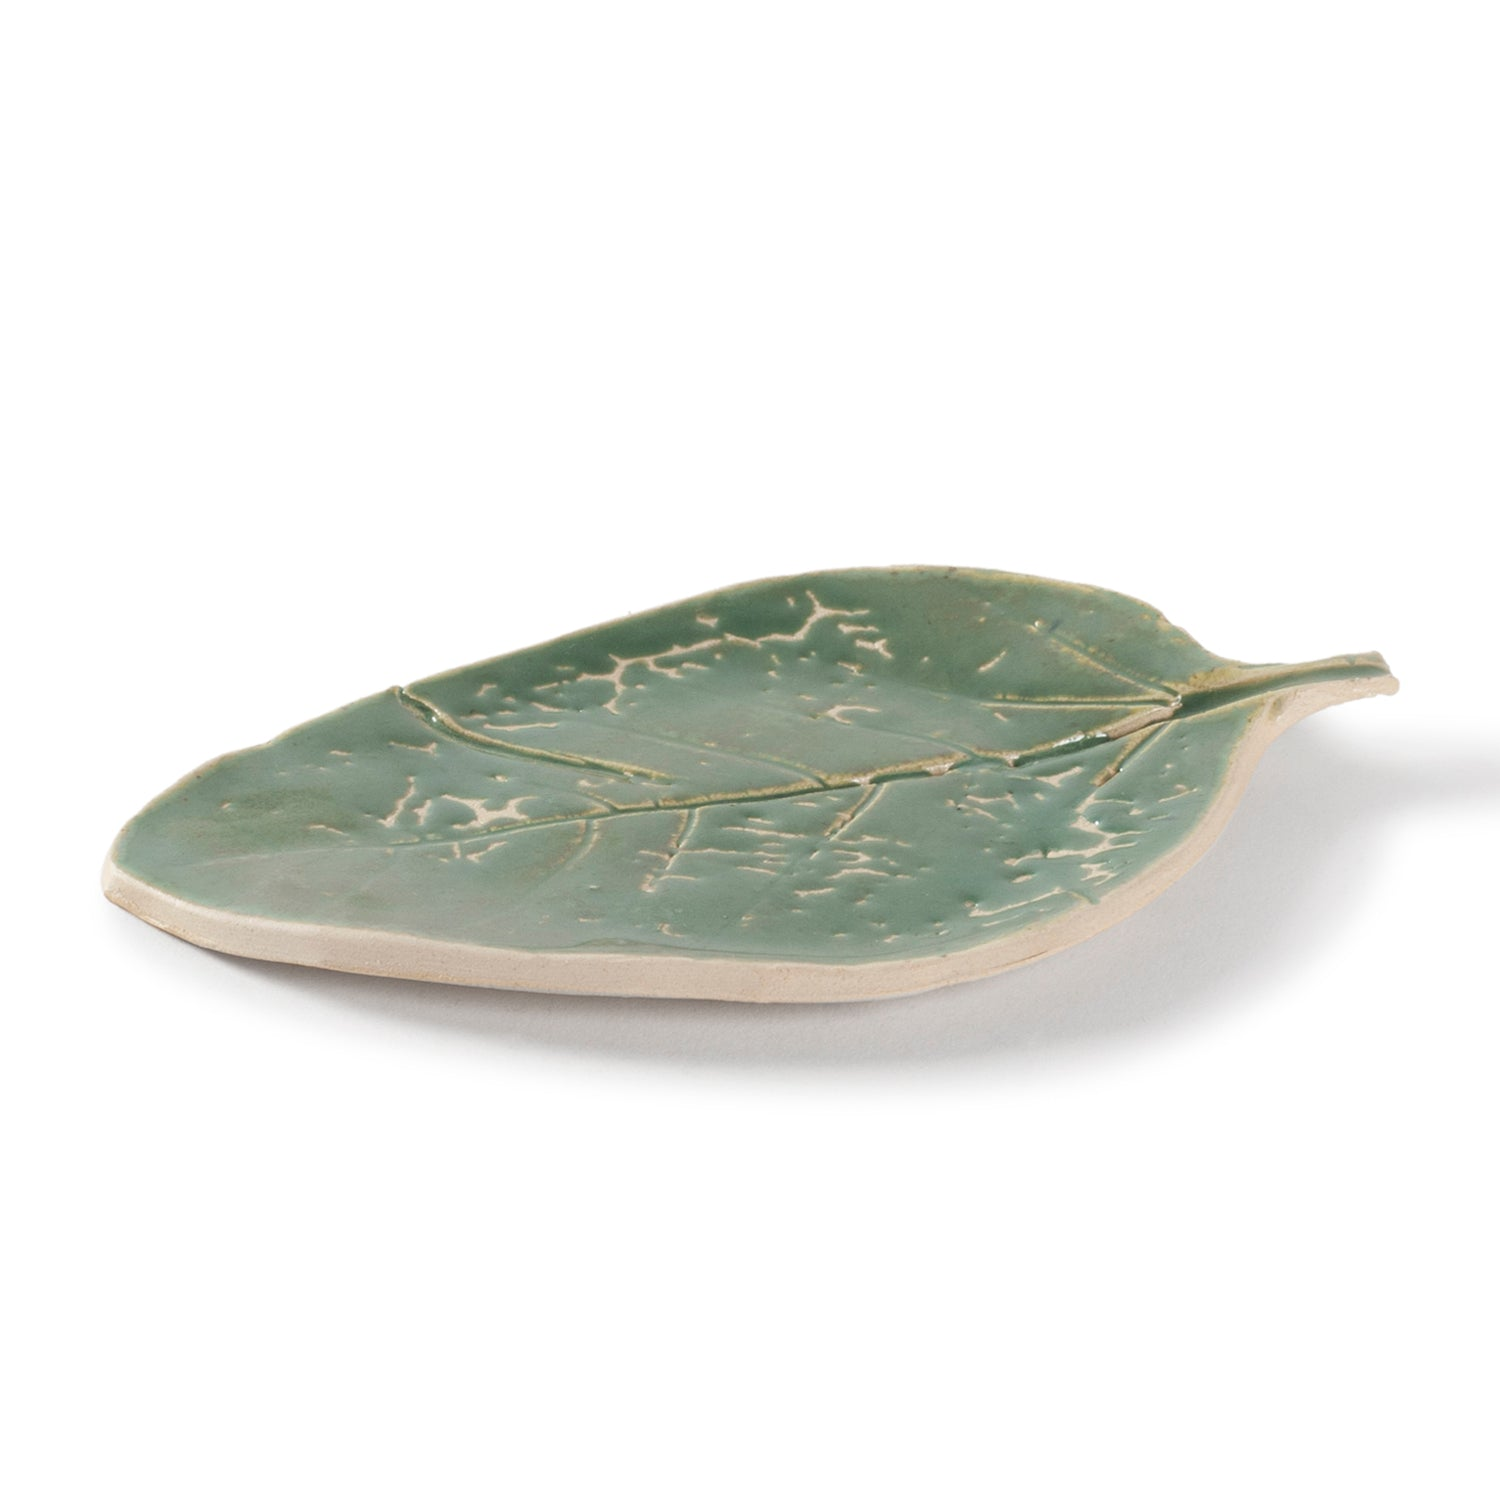 Stoneware Clay Leaf Platter 8x5 Single Pc